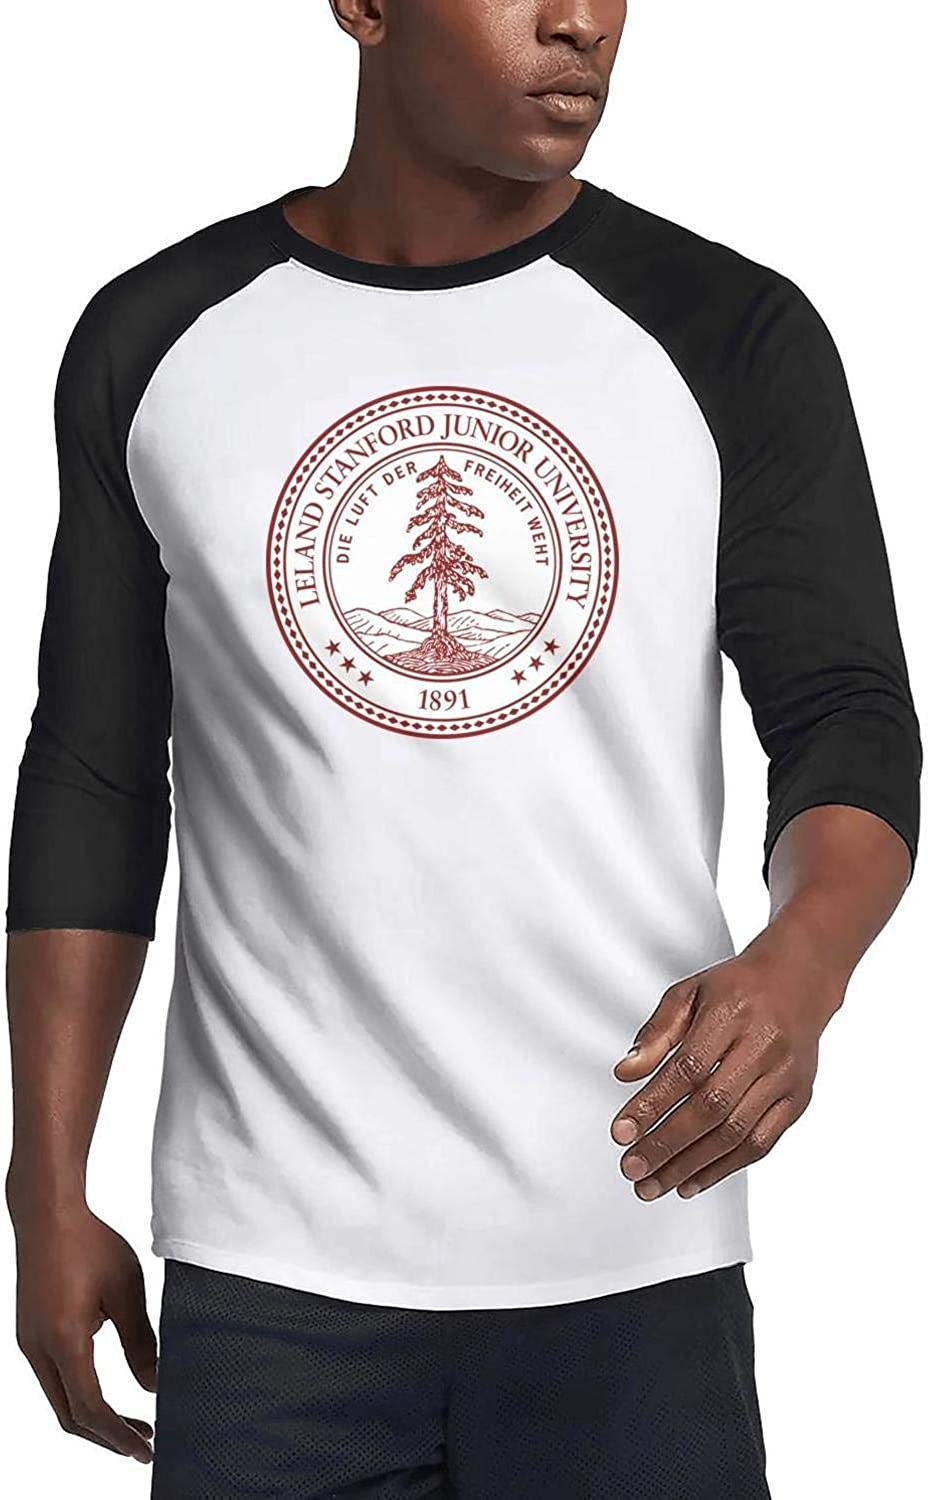 3//4 Sleeve Raglan Shirt Athletic Baseball Jersey Defoliate Mens Stanford-University-s